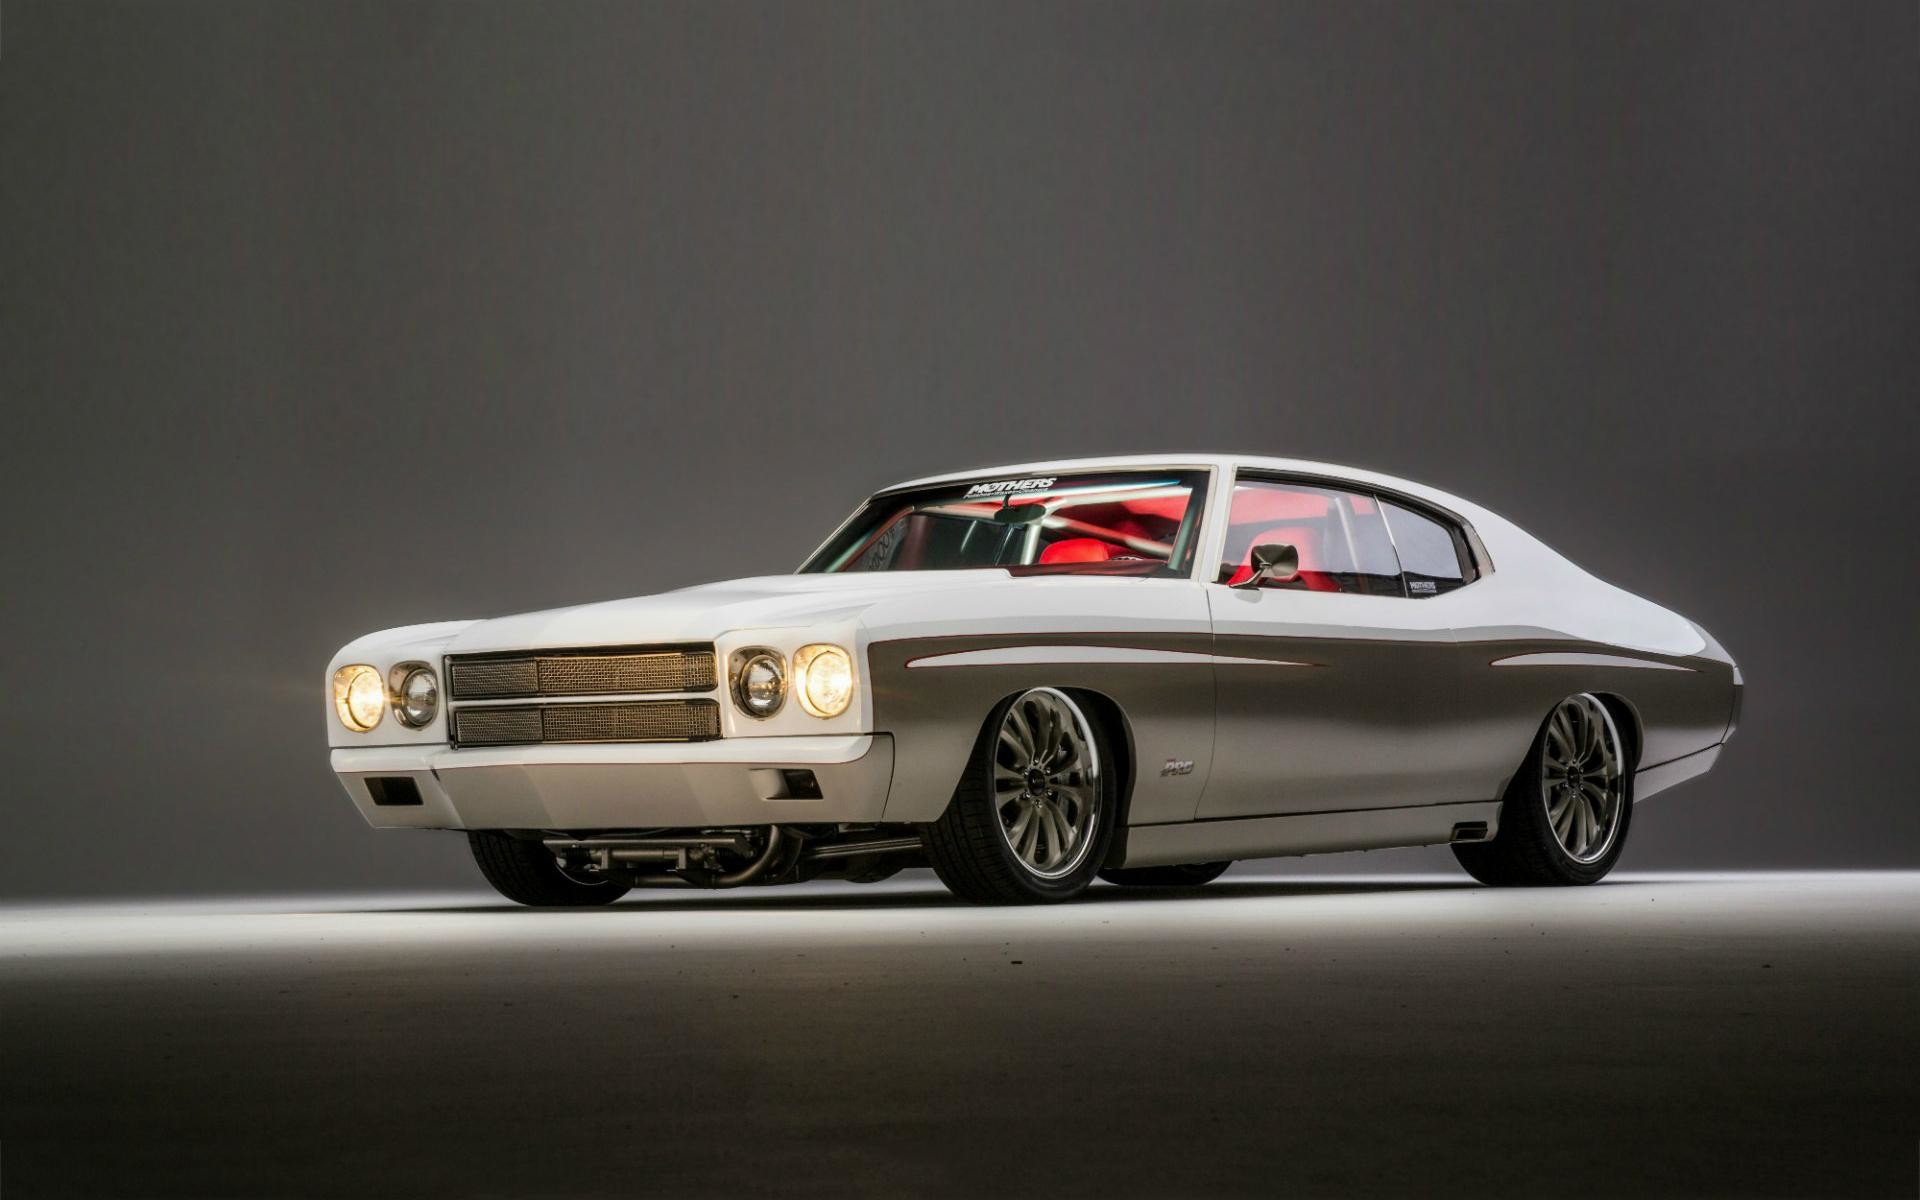 1920x1200 Free-wallpapers-chevrolet-chevelle